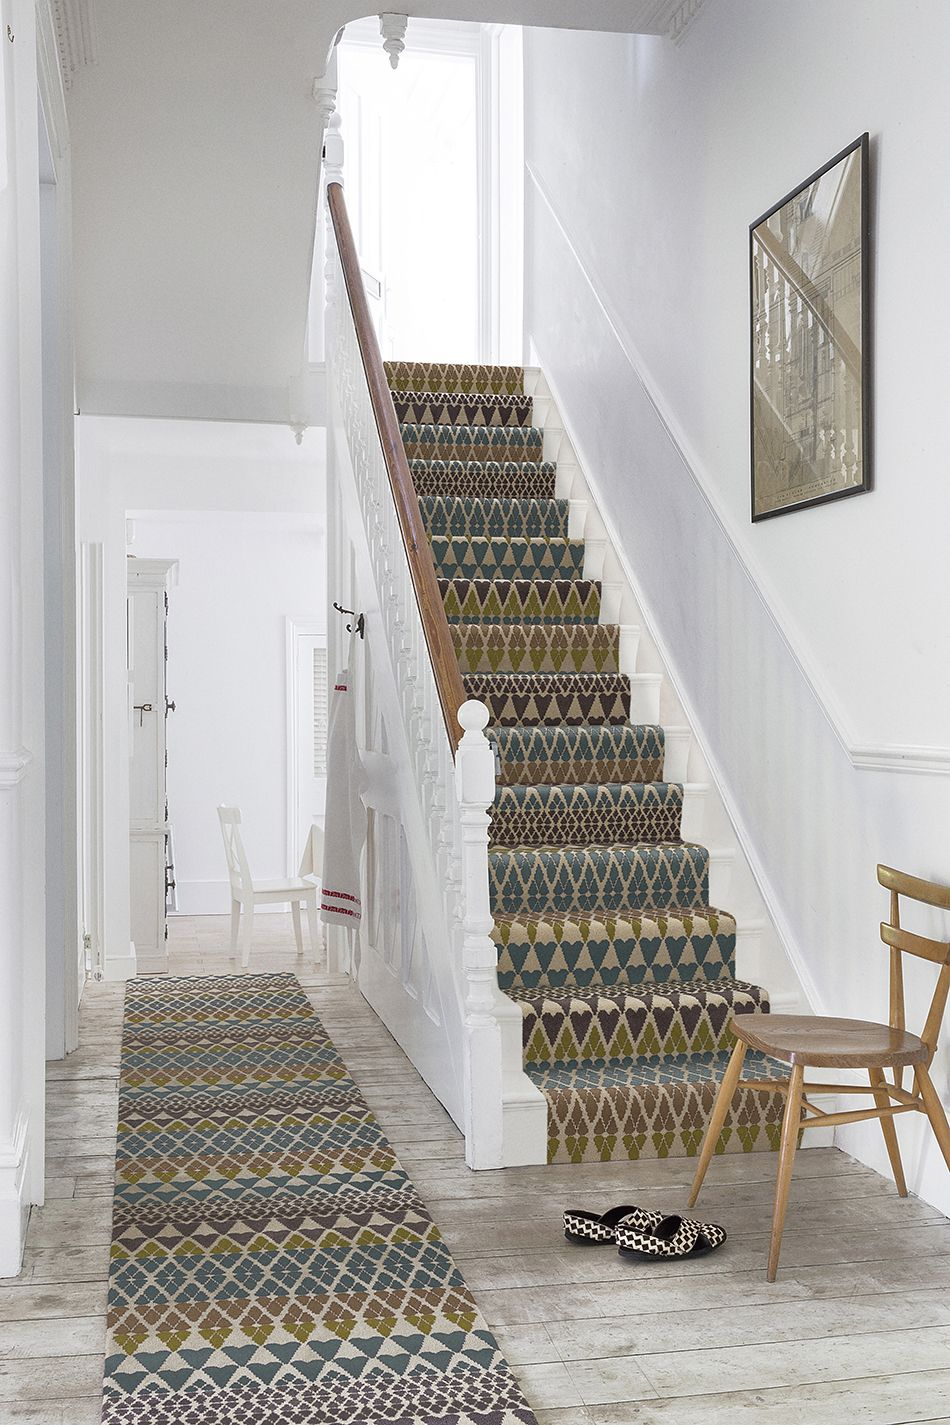 Best A Patterned Carpet From Www Michael John Co Uk Patterned 400 x 300